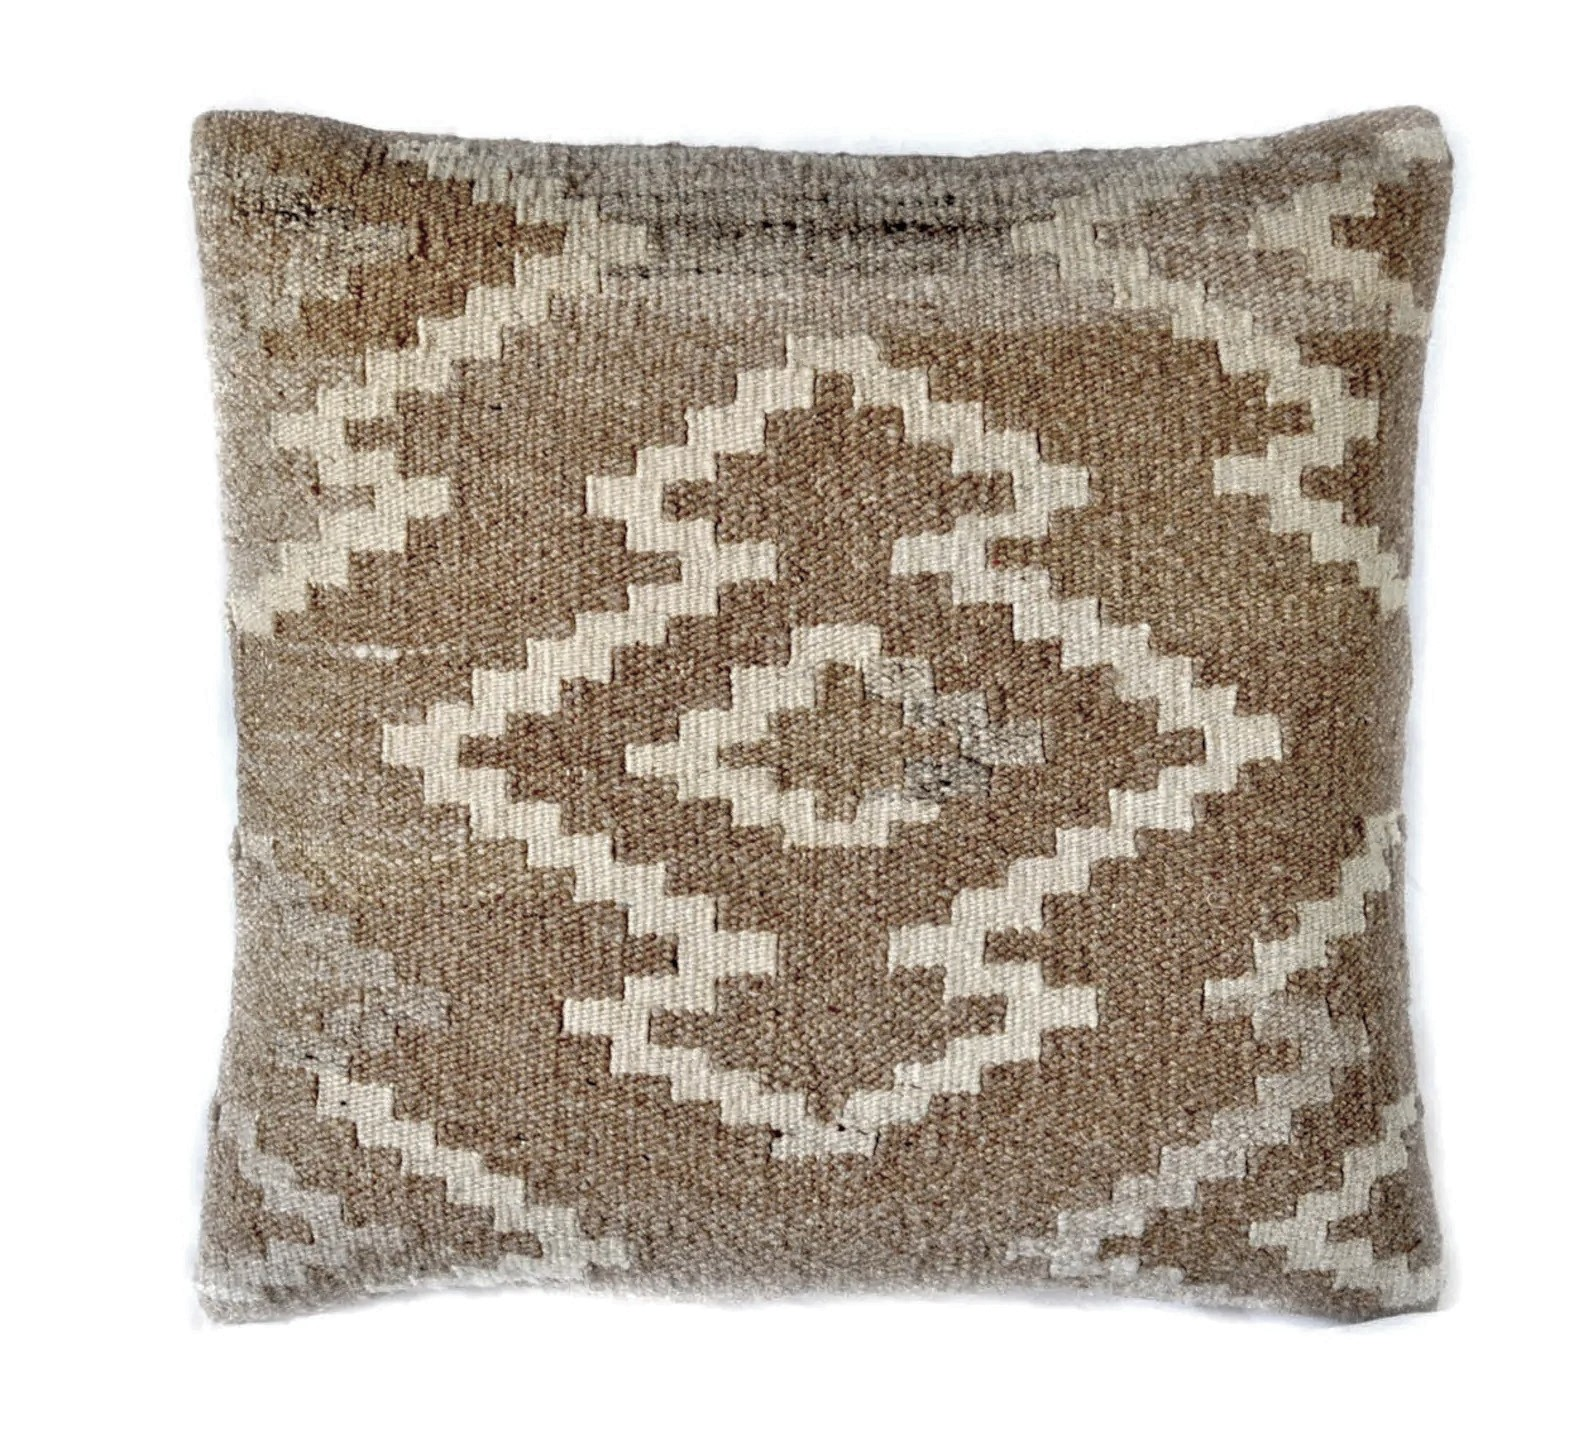 18″x18″ Hand-woven Wool Kilim Pillow Cover 12980987